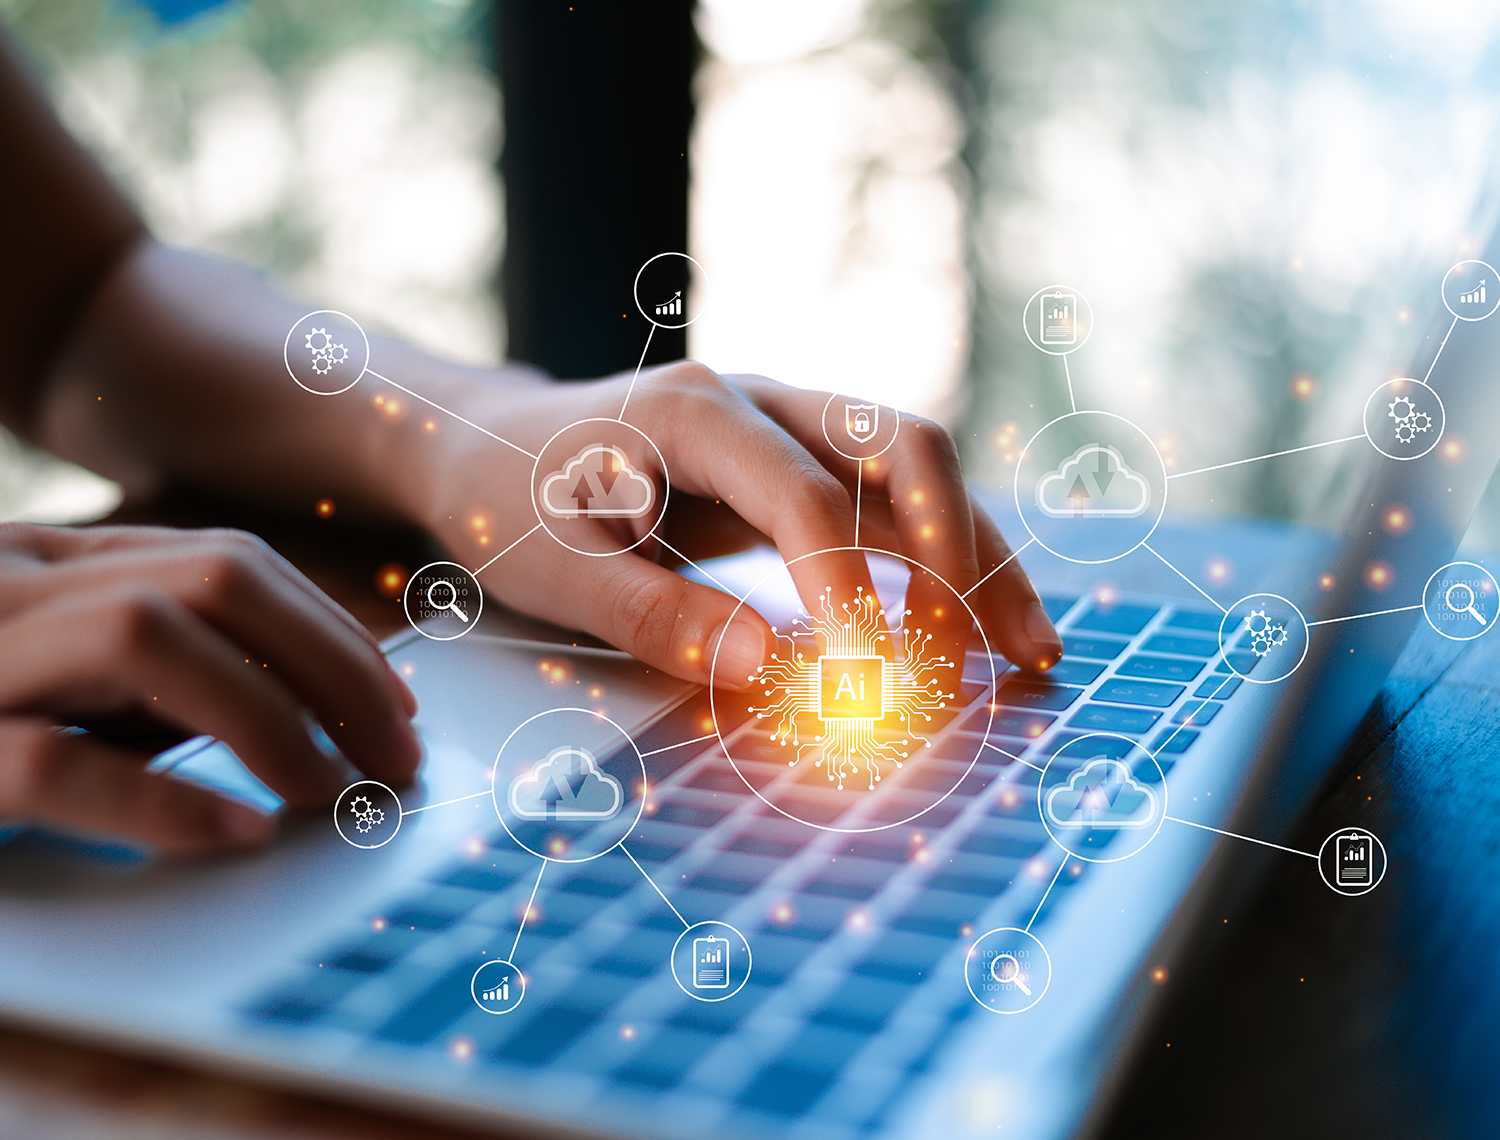 Digital transformation change management, internet of things. new technology bigdata and business process strategy, customer service management, cloud computing, smart industry.Ai technology.